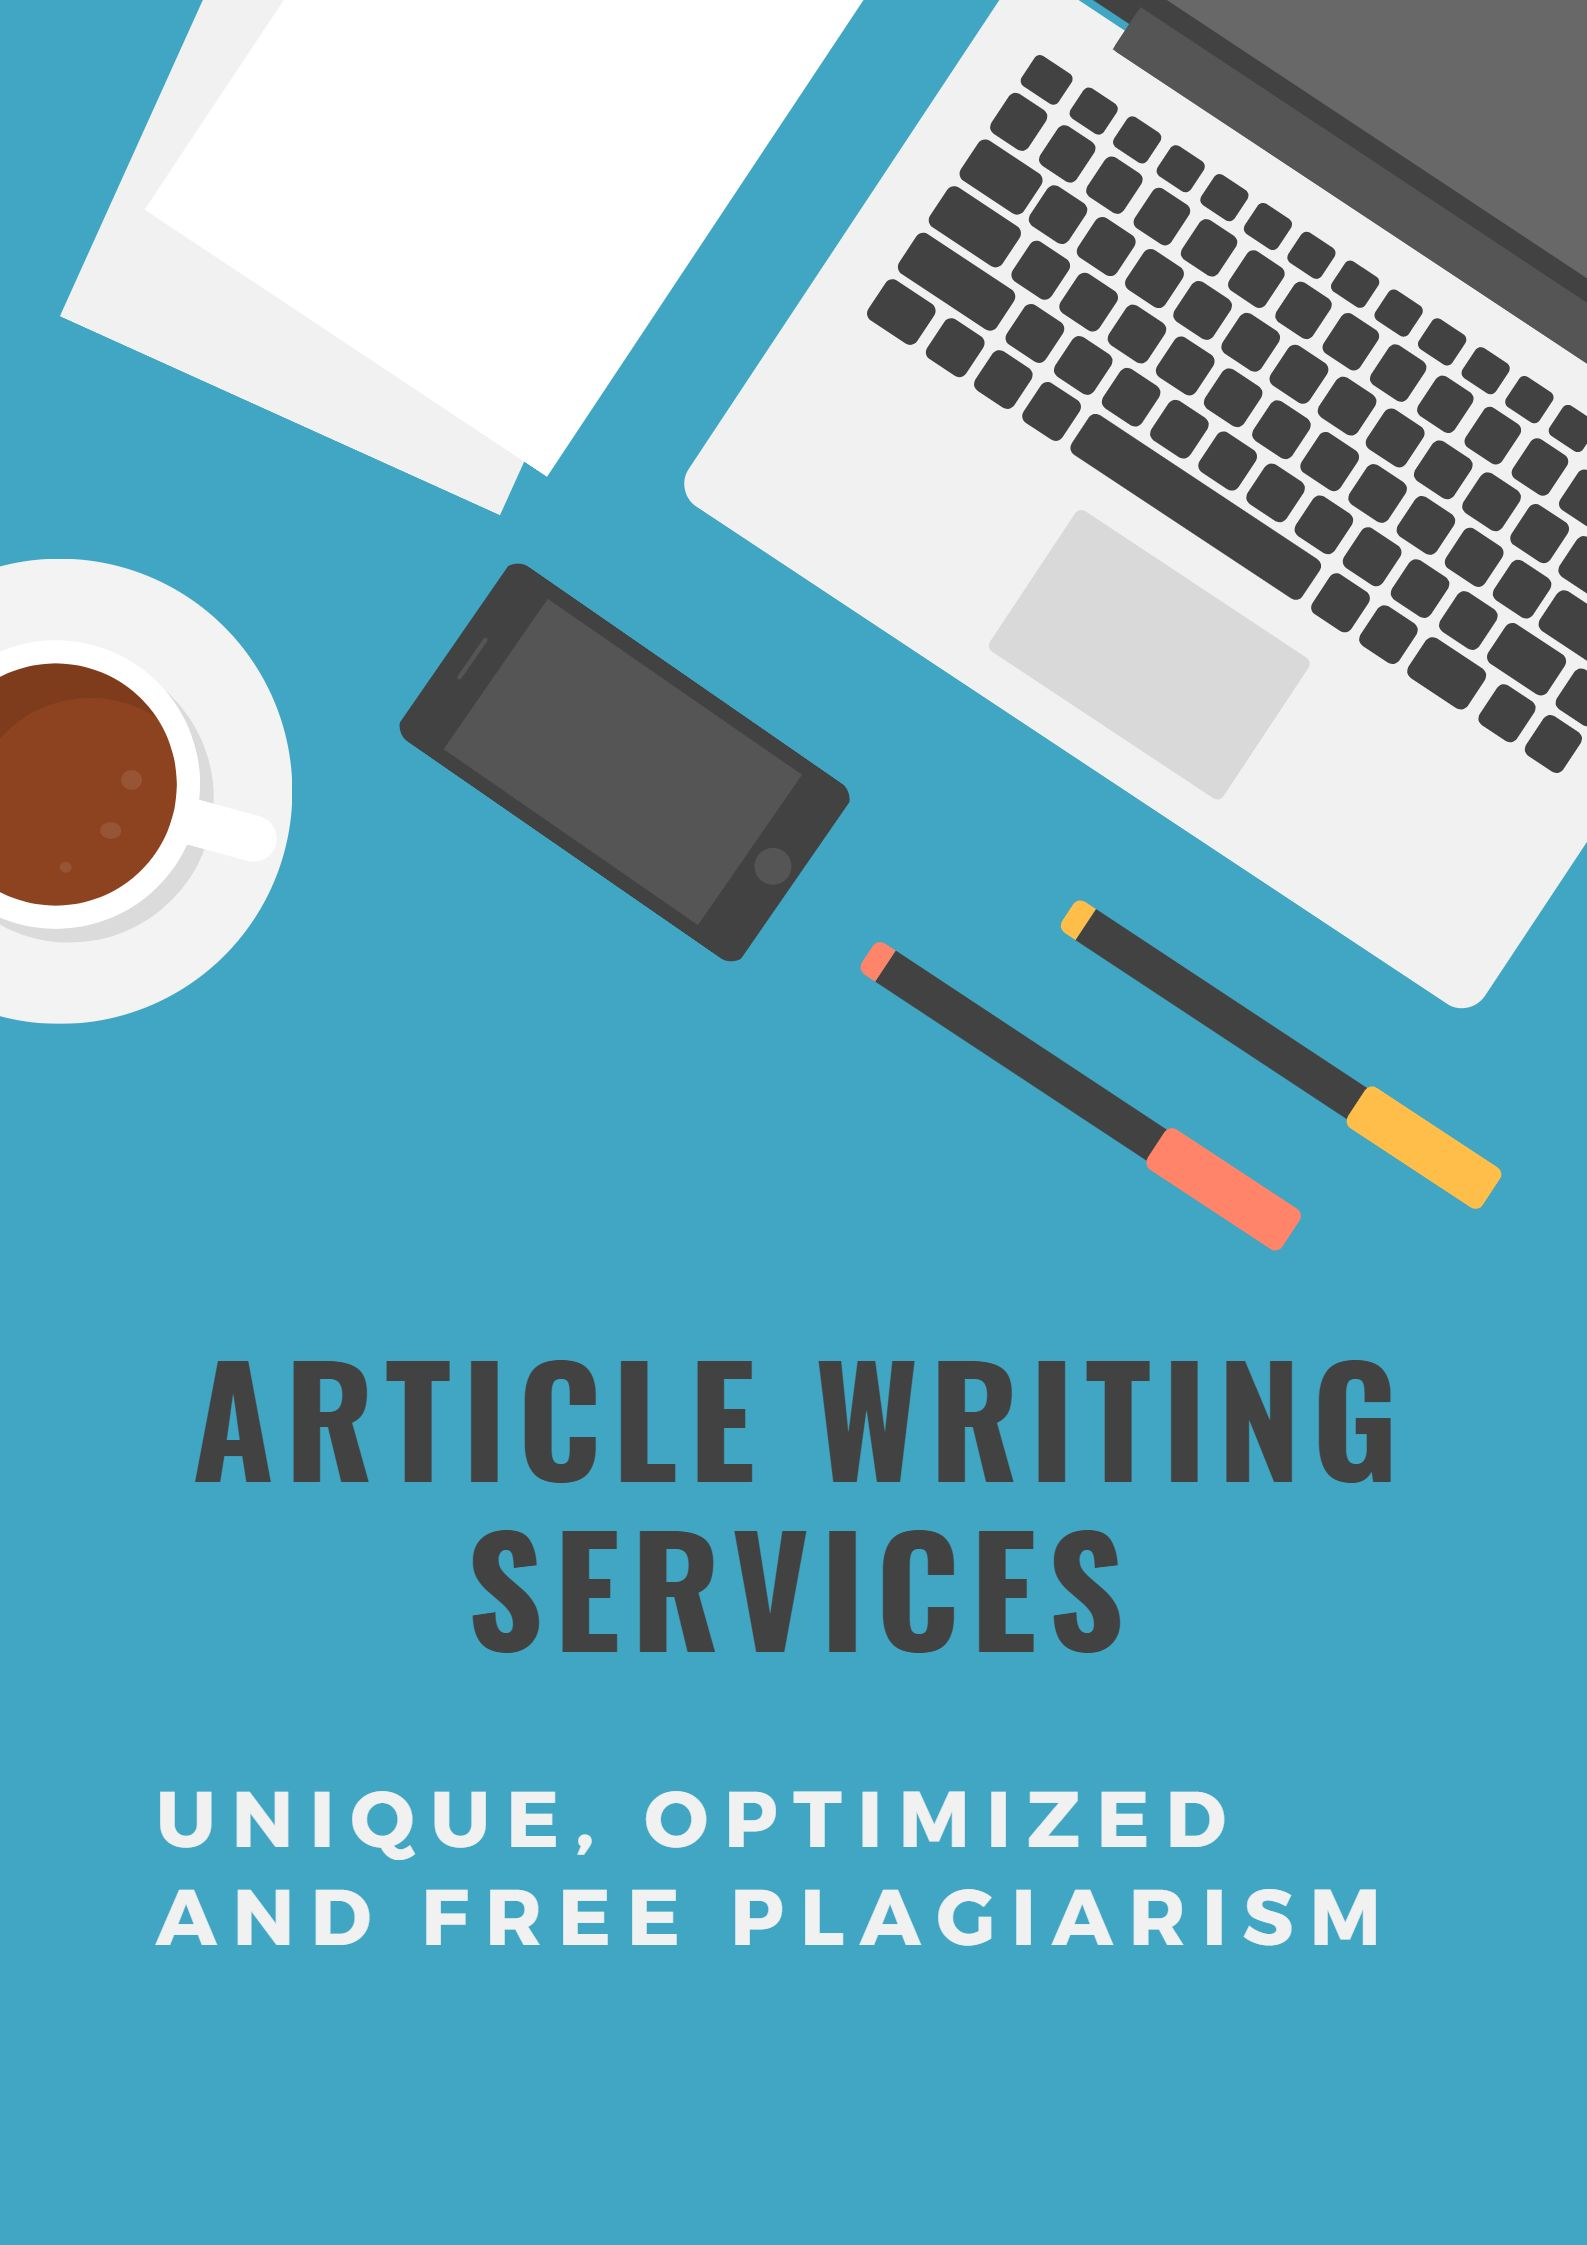 I will be your SEO website content over 500 words well-written,  unique and optimized article writing